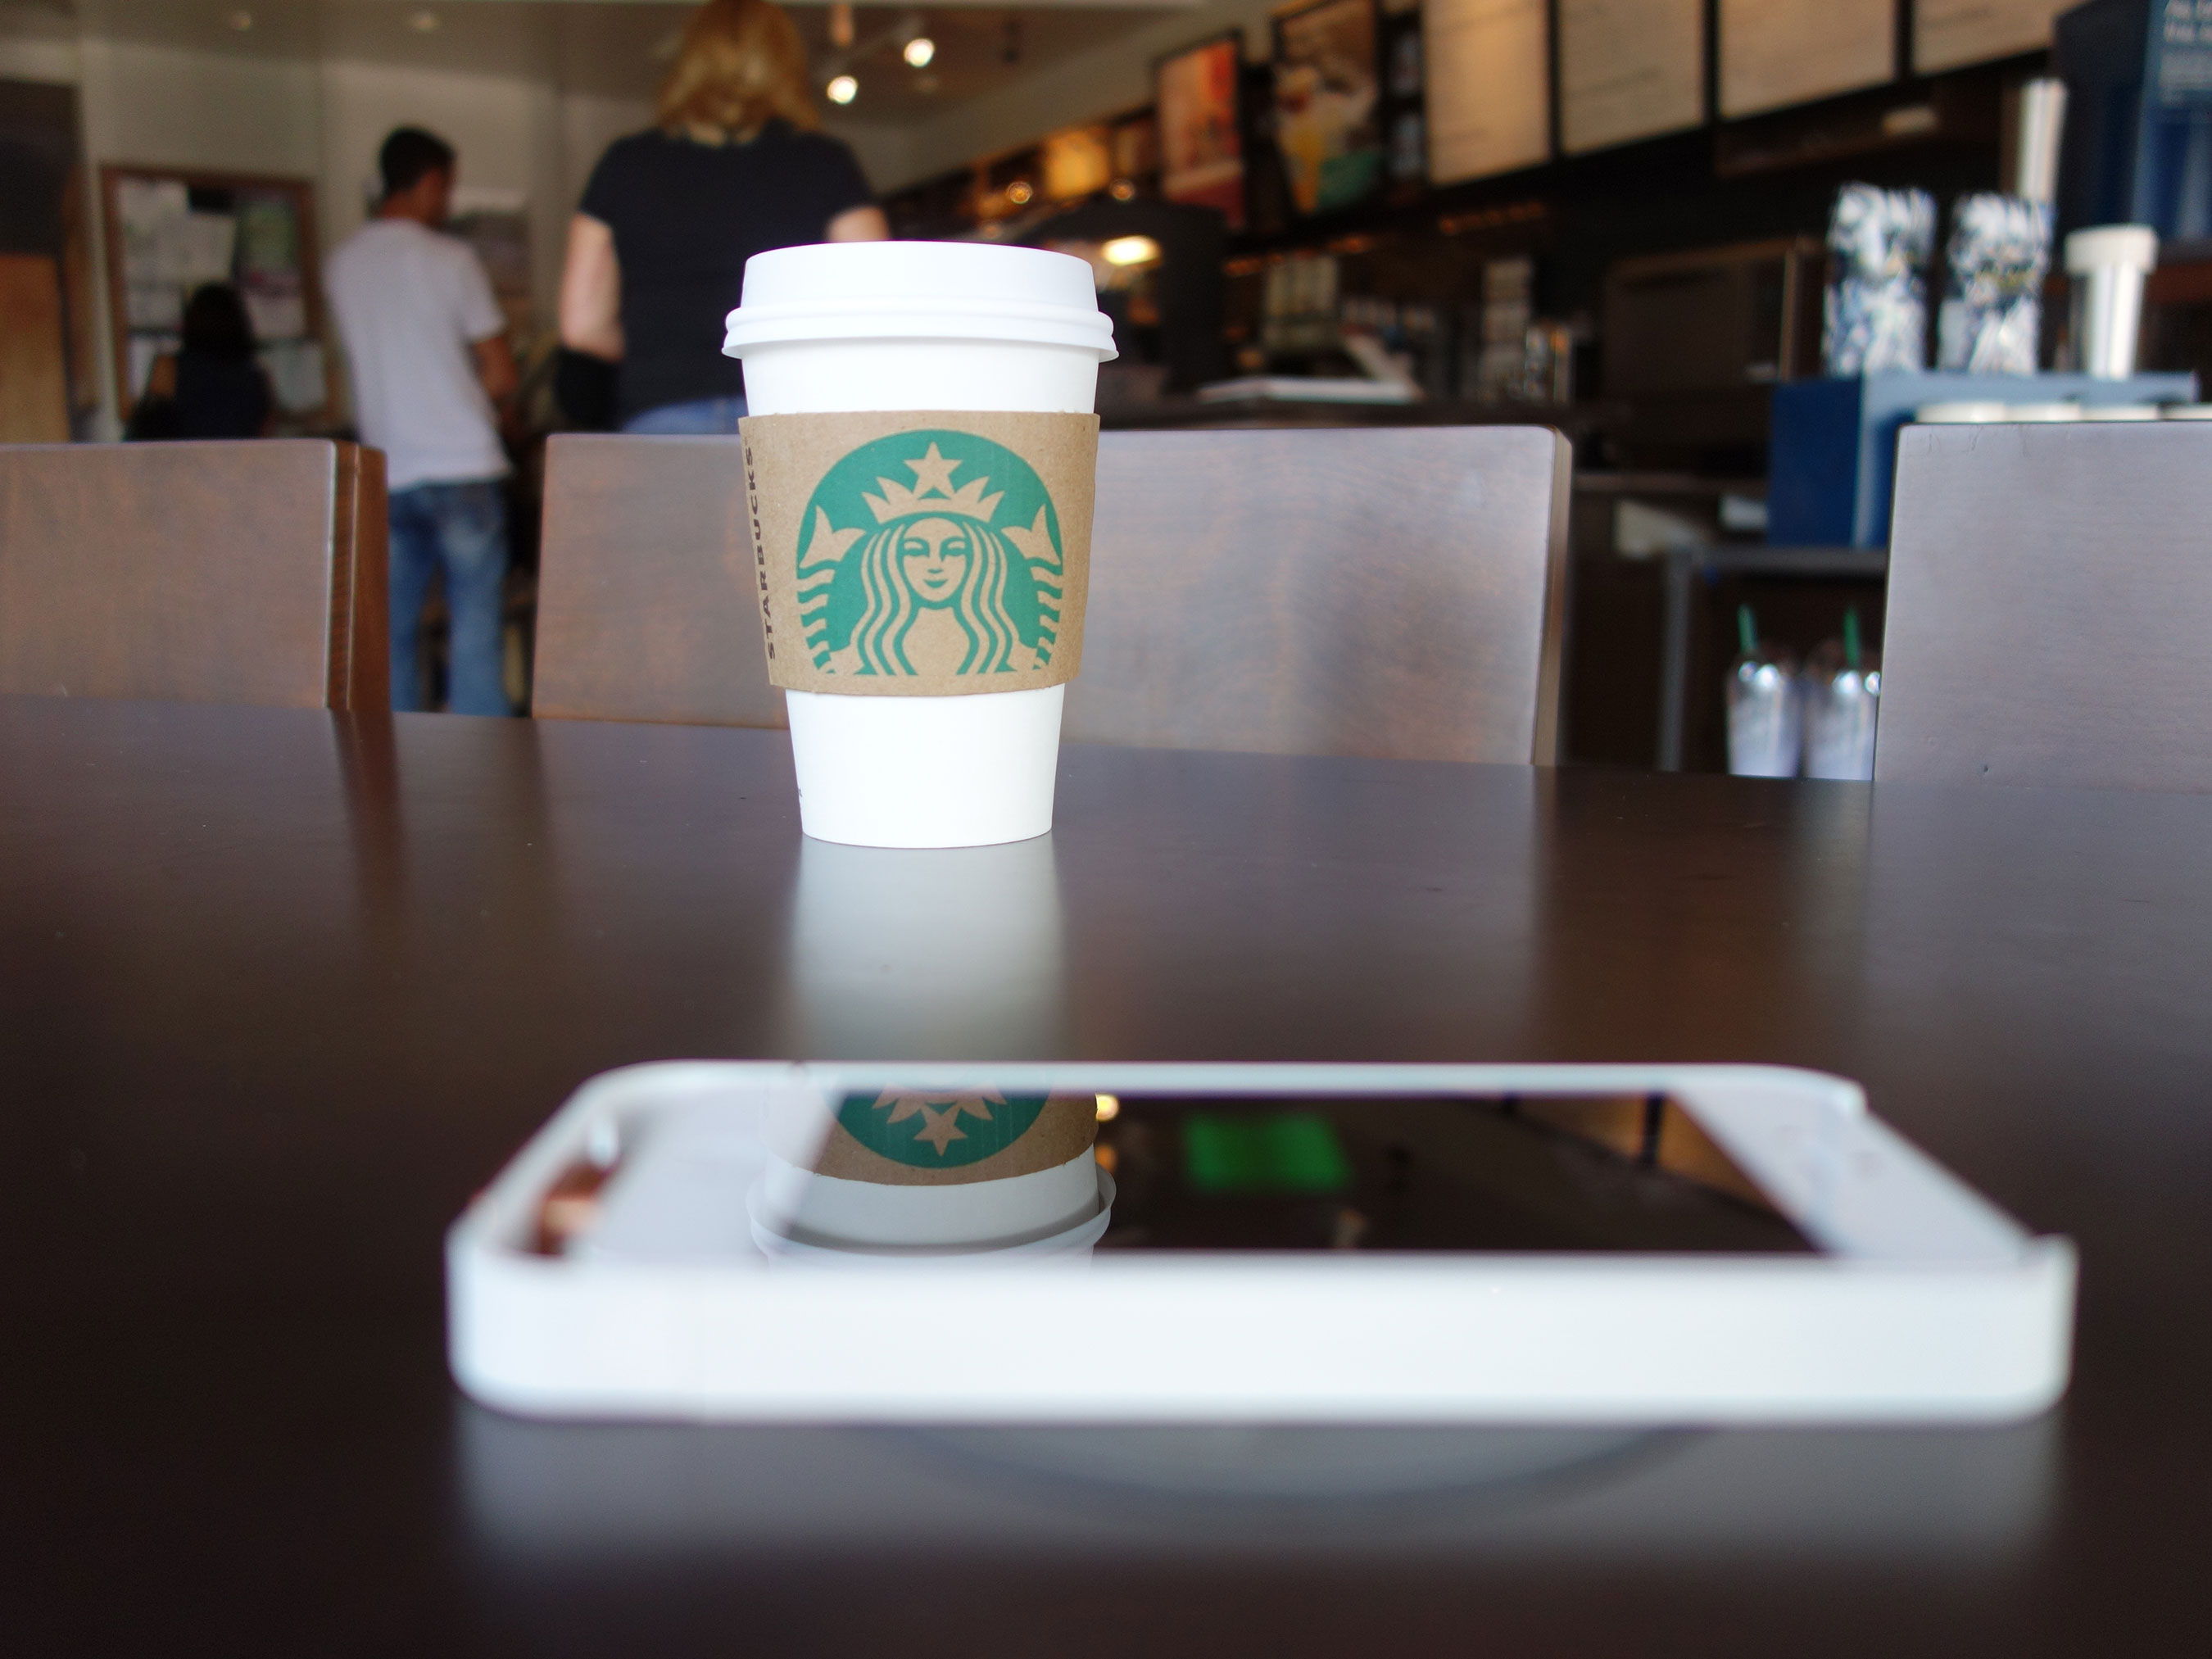 Phone with charger on Powermat at Starbucks